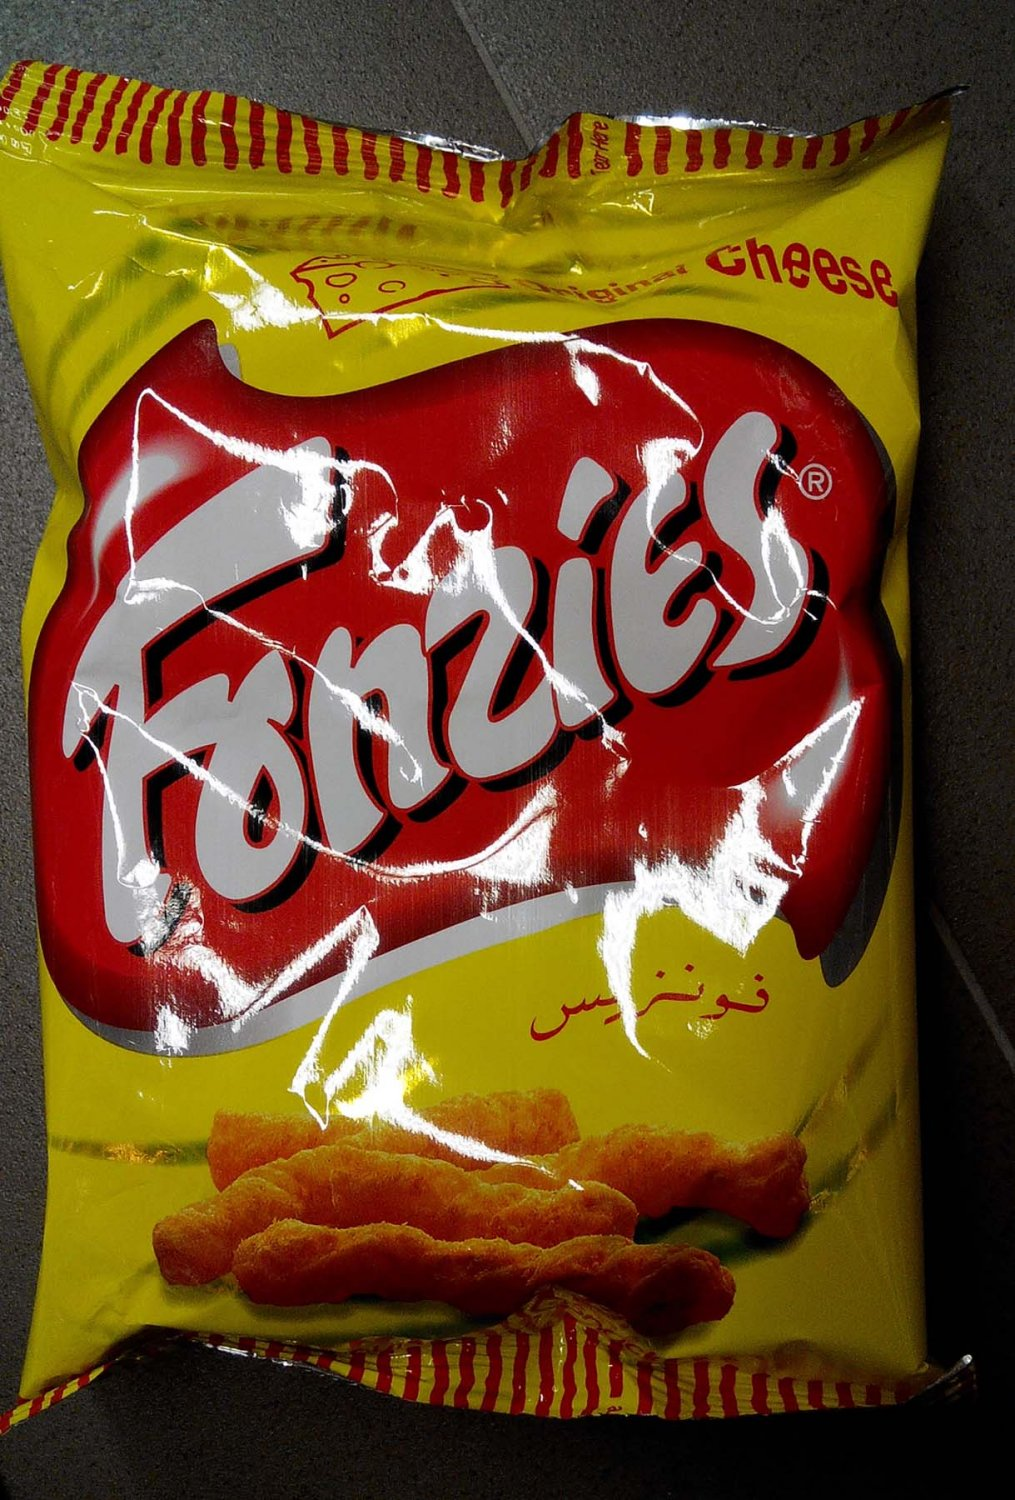 Fonzies Snacks